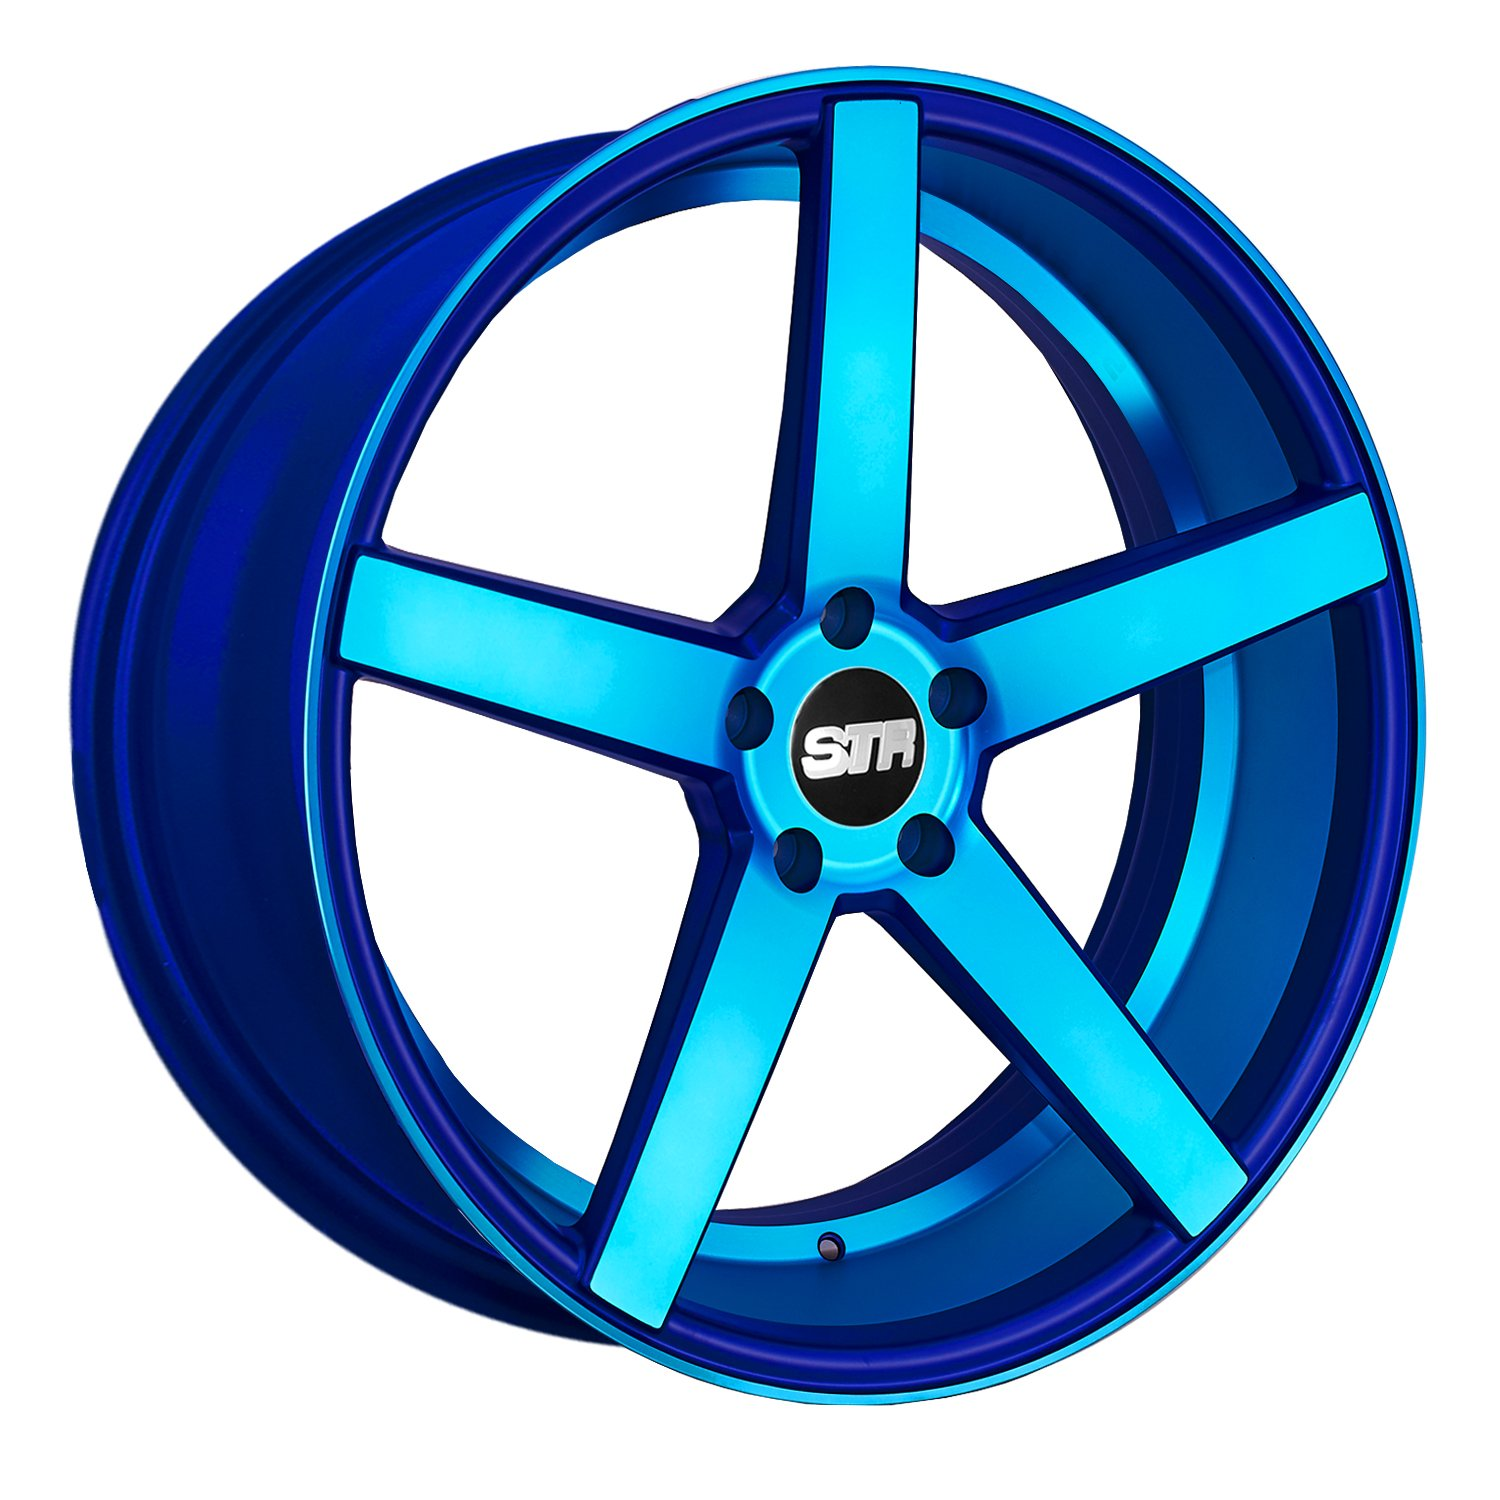 STR RACING STR607 Neon Blue Wheel with Painted Finish (19 x 10. inches /5 x 4 inches, 35 mm Offset)